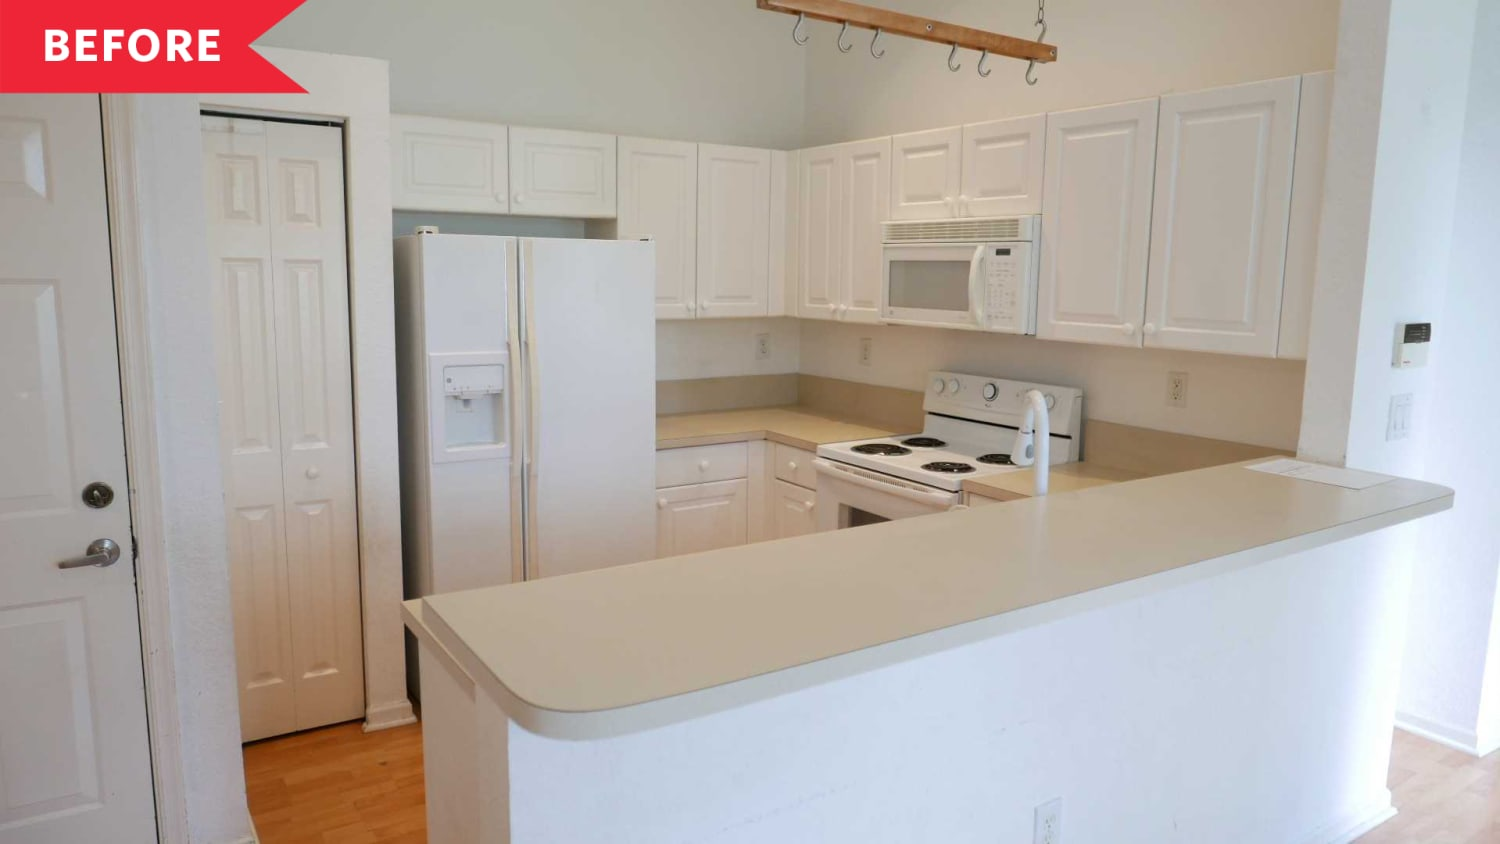 Before & After: This Kitchen Has the Exact Same Layout, but Is Now Way More Functional